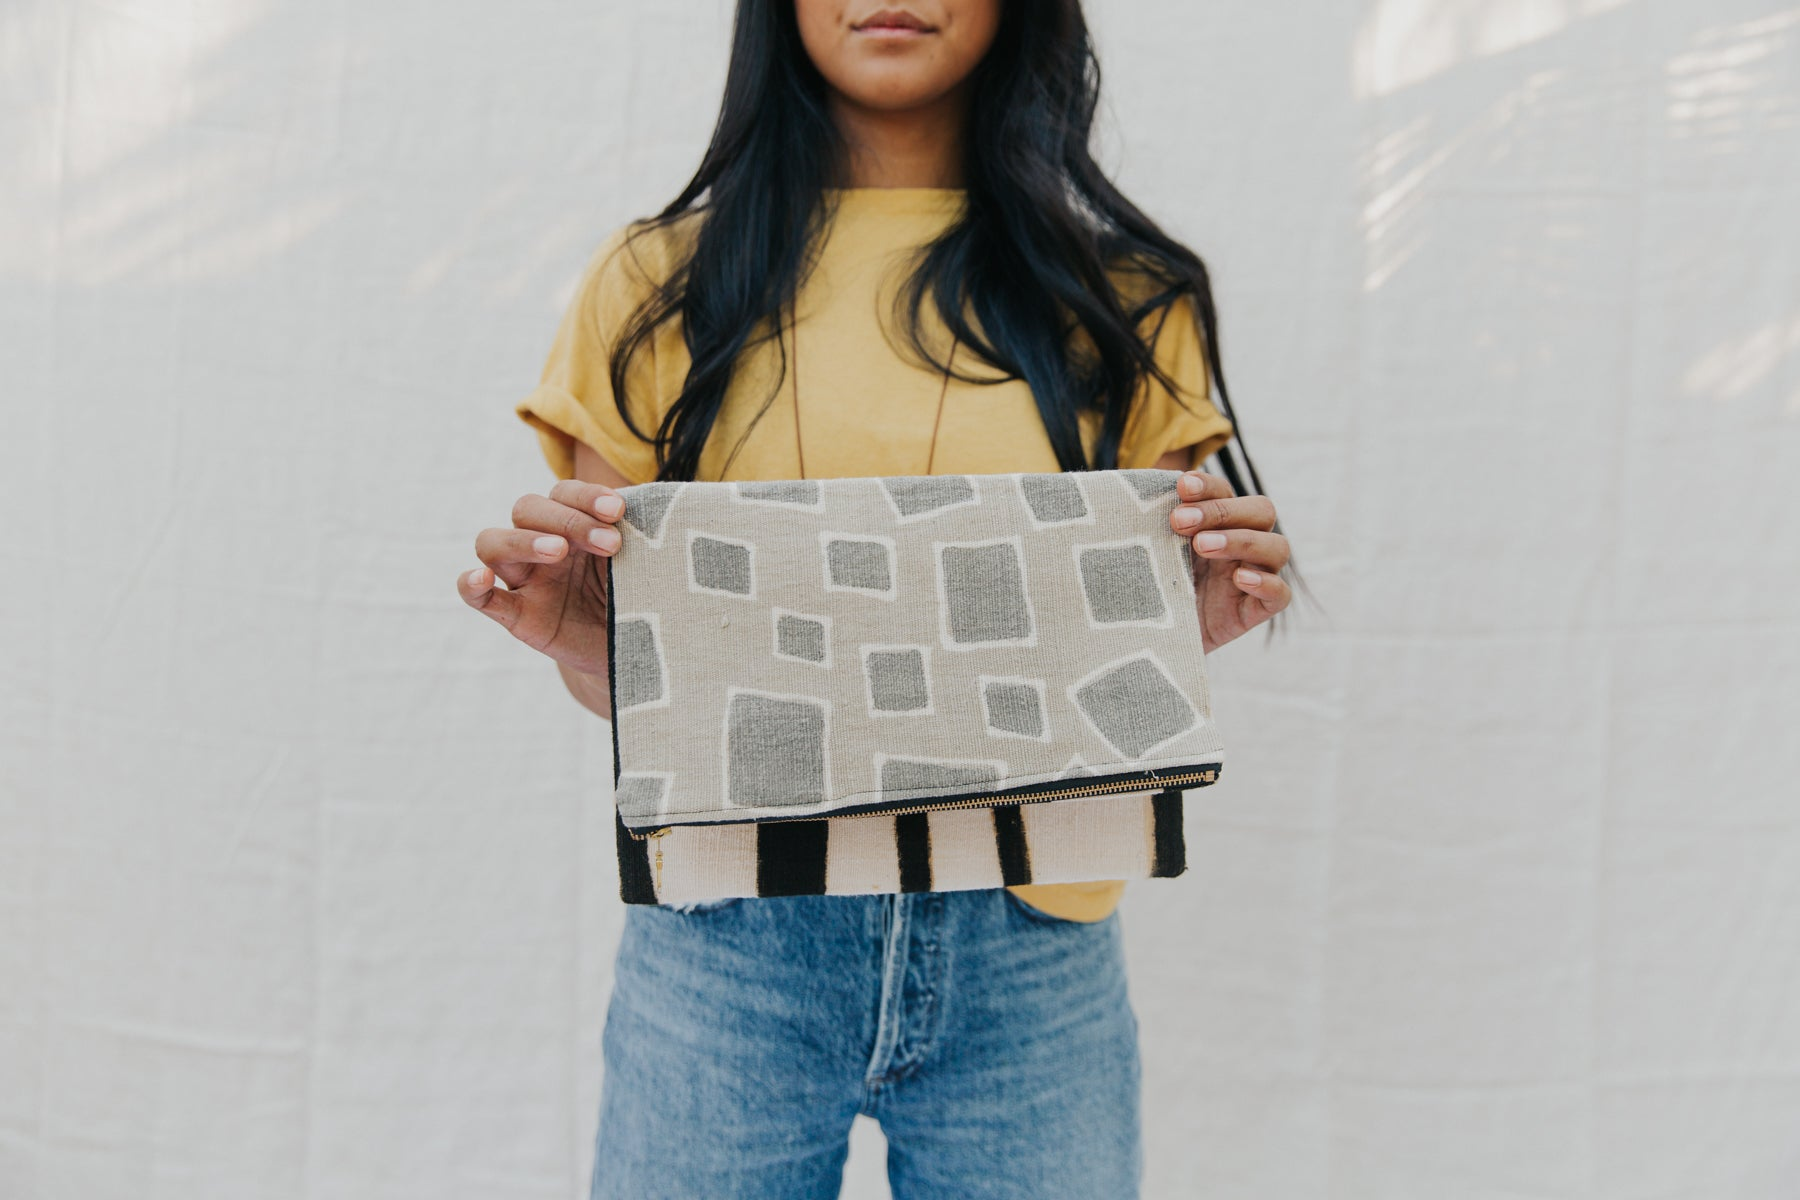 Handmade foldover/reversible clutch featuring fair trade textiles naturally-dyed by artisans from Mali. Each clutch is lined with 100% organic cotton. Sewn by our resettled refugee artisan, Lashta, locally in San Diego.